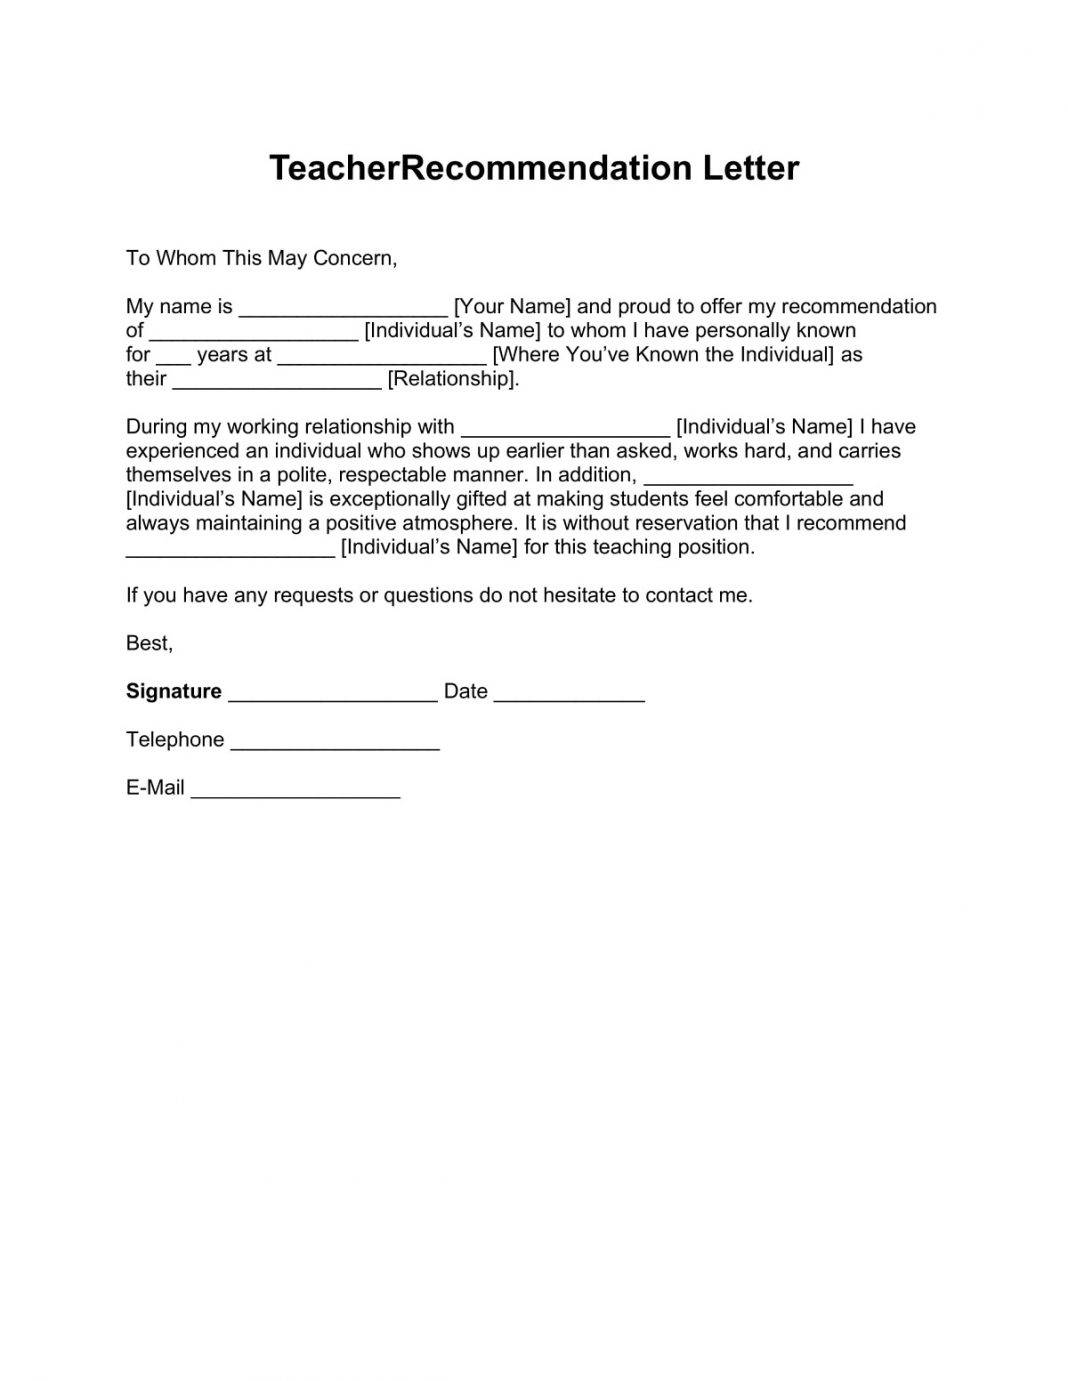 Teacher-Recommendation-Letter-Template-1 Letter Recommendation For College Sample Student Format Teacher Employee From Manager  Template Samples Large